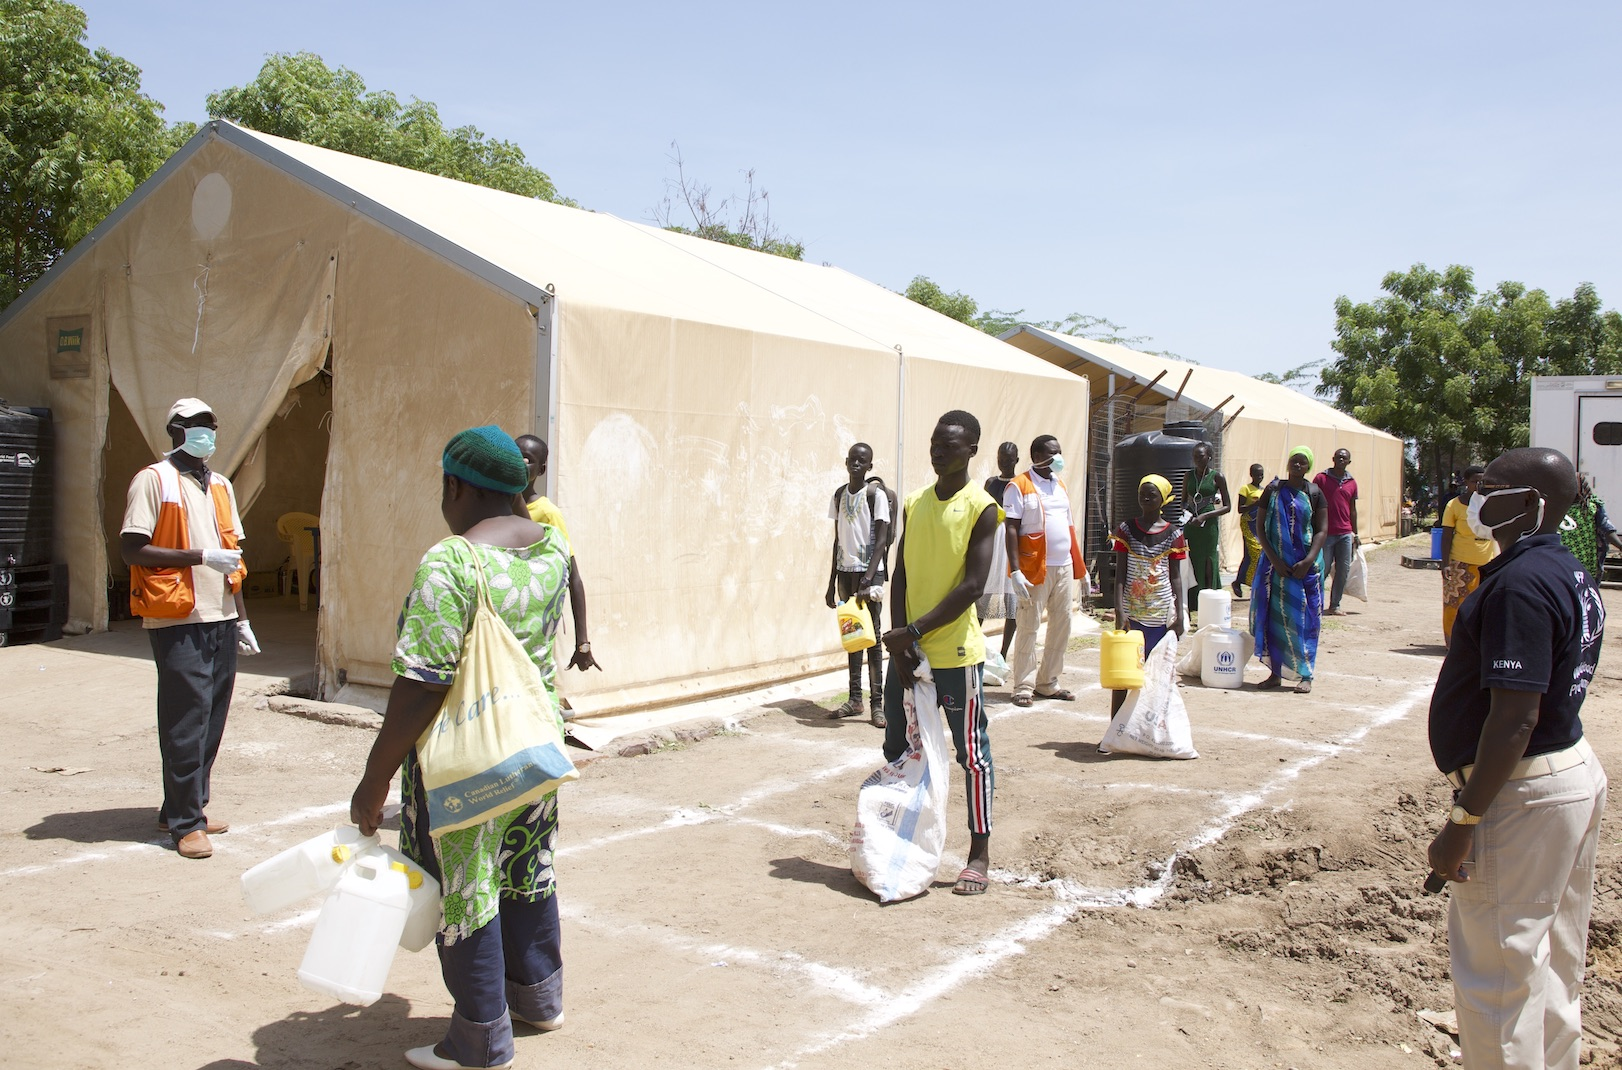 People maintaining social distancing at Kakuma Refugee Camp to stop the spread of COVID-19. ©World Vision Photo